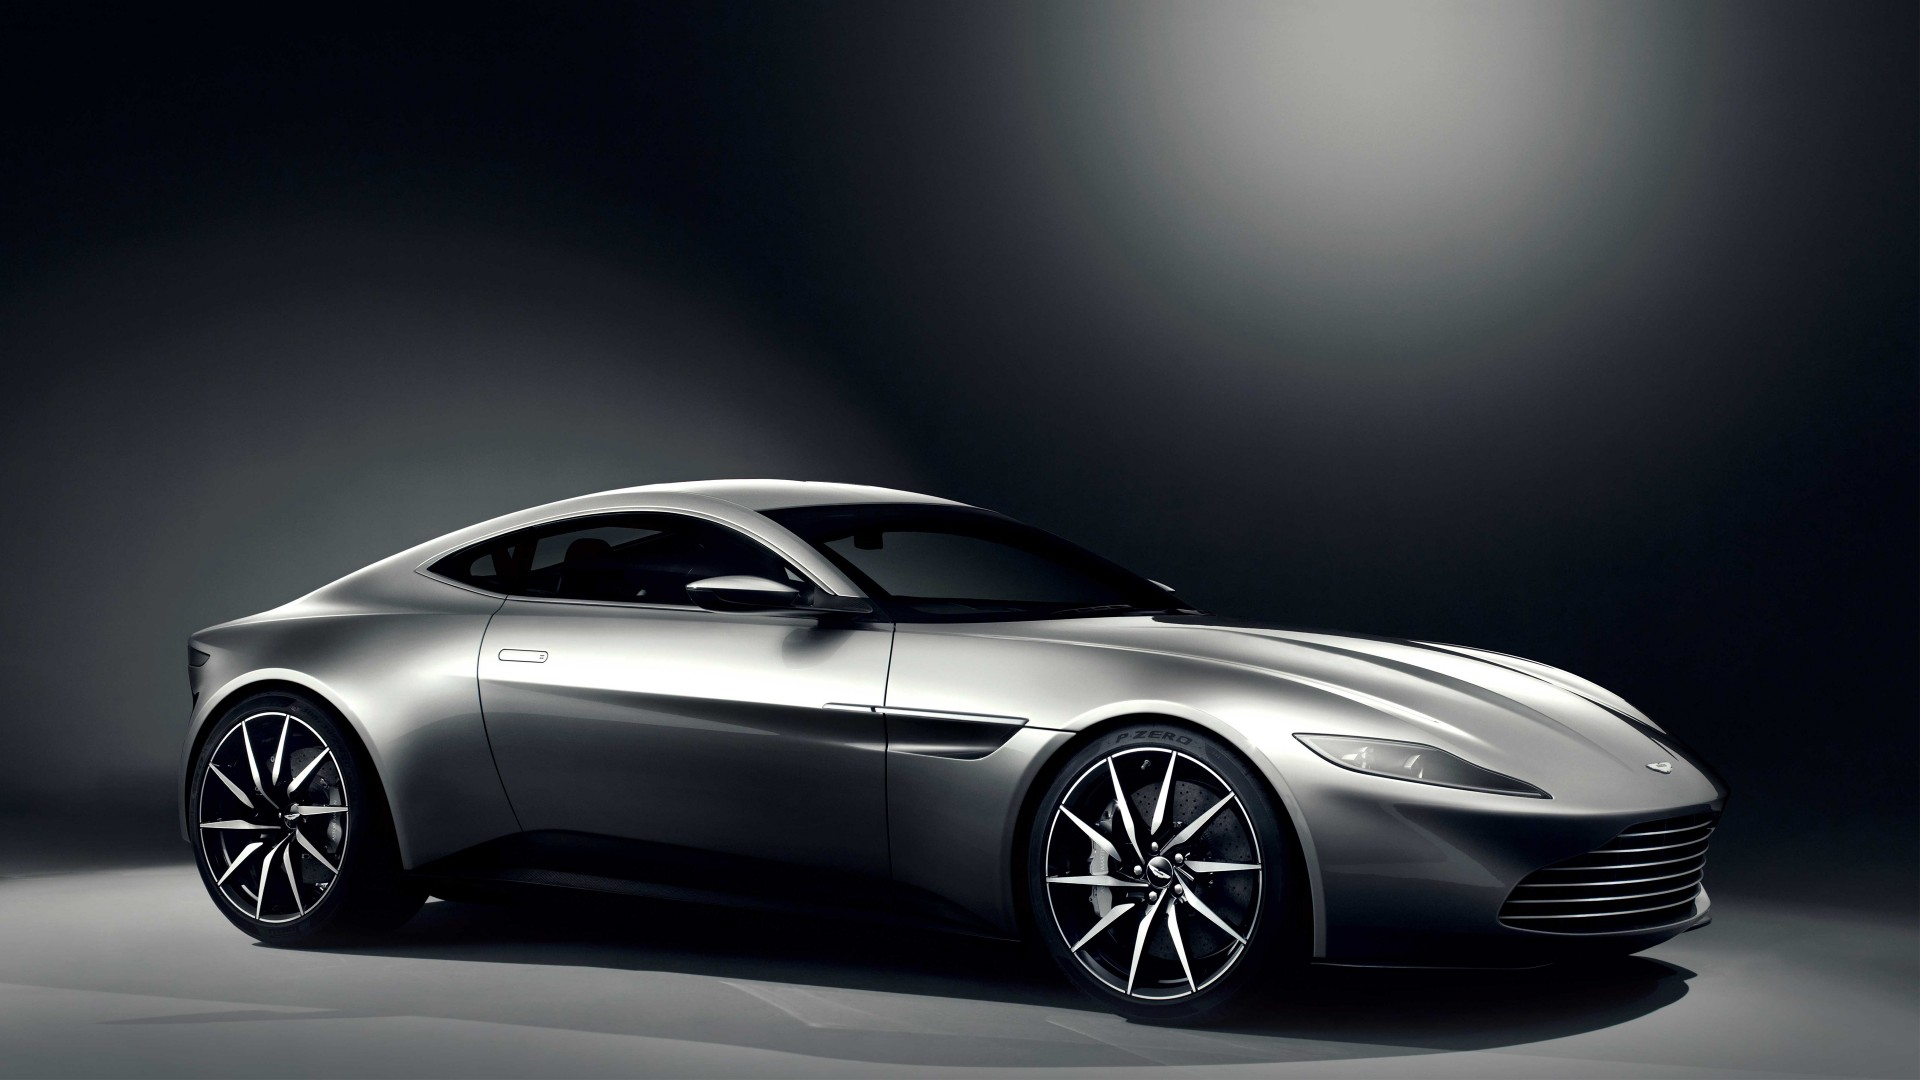 aston martin db10 4k wallpaper hd car wallpapers. Black Bedroom Furniture Sets. Home Design Ideas